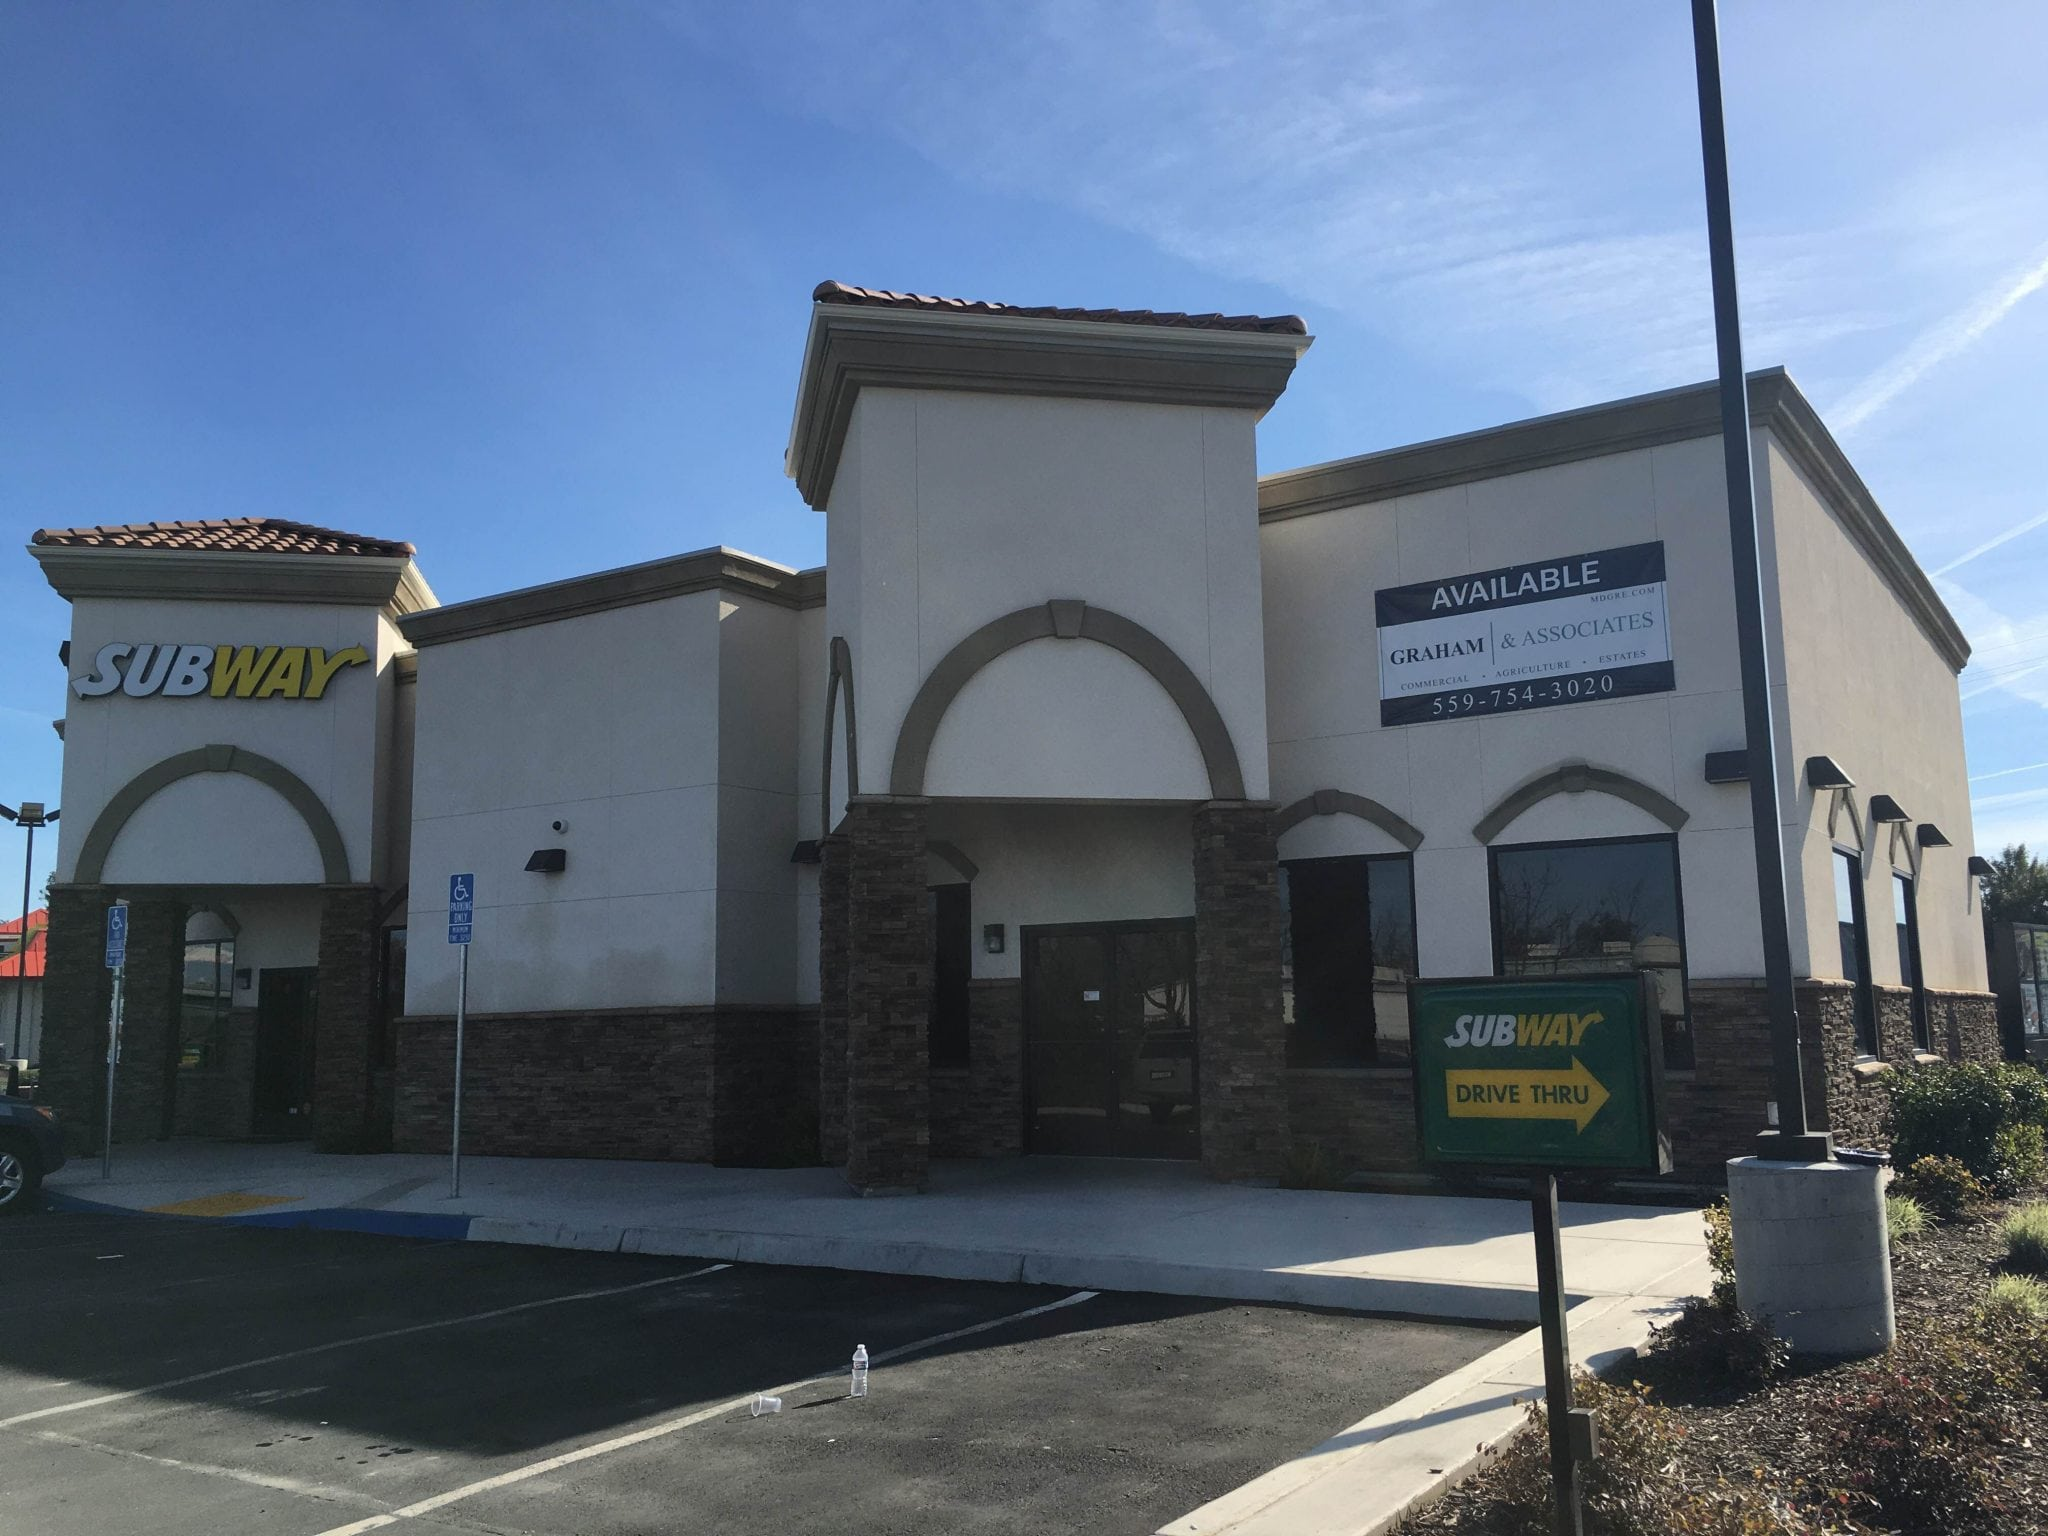 438 W Noble - Suite B | Farmersville, CA